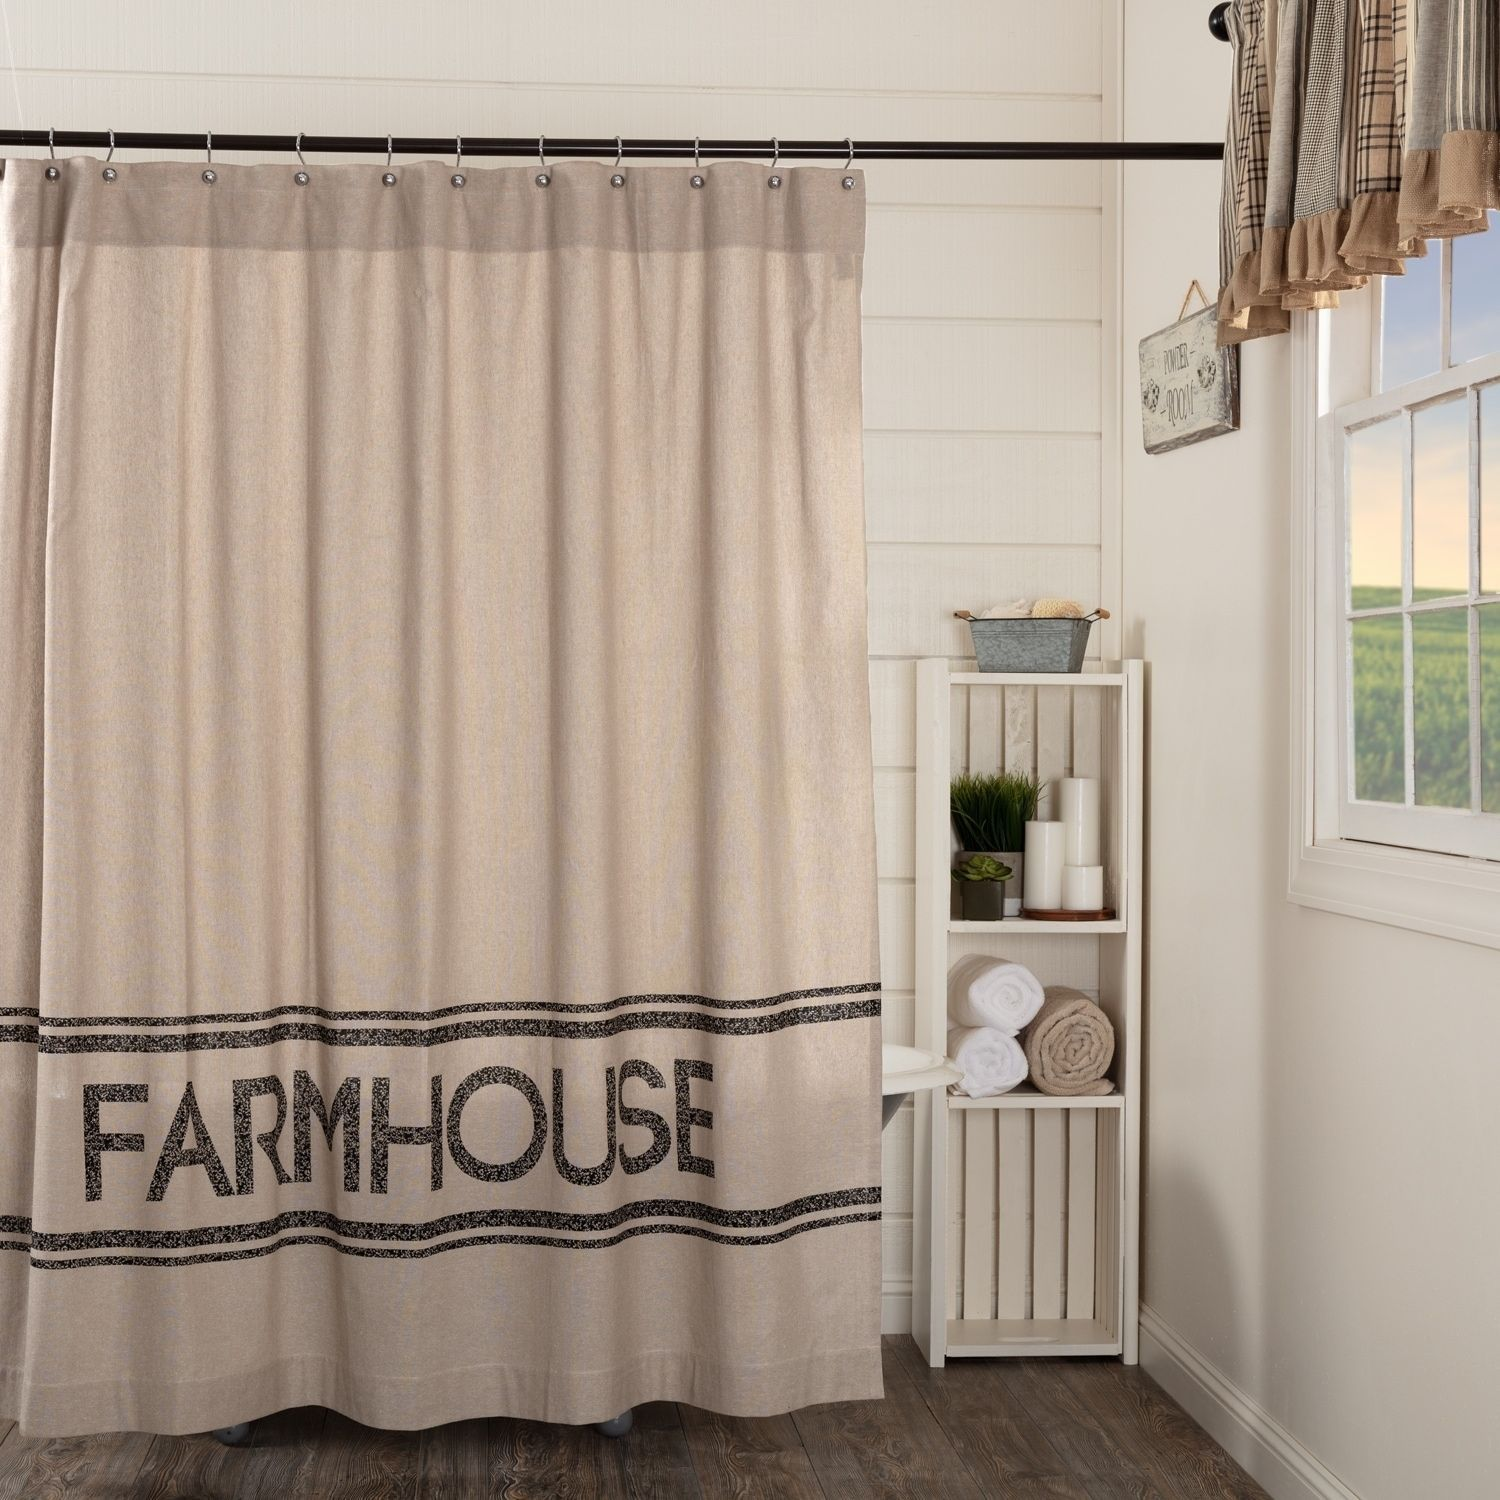 Tan Farmhouse Bath Miller Farm Shower Curtain Rod Pocket Cotton